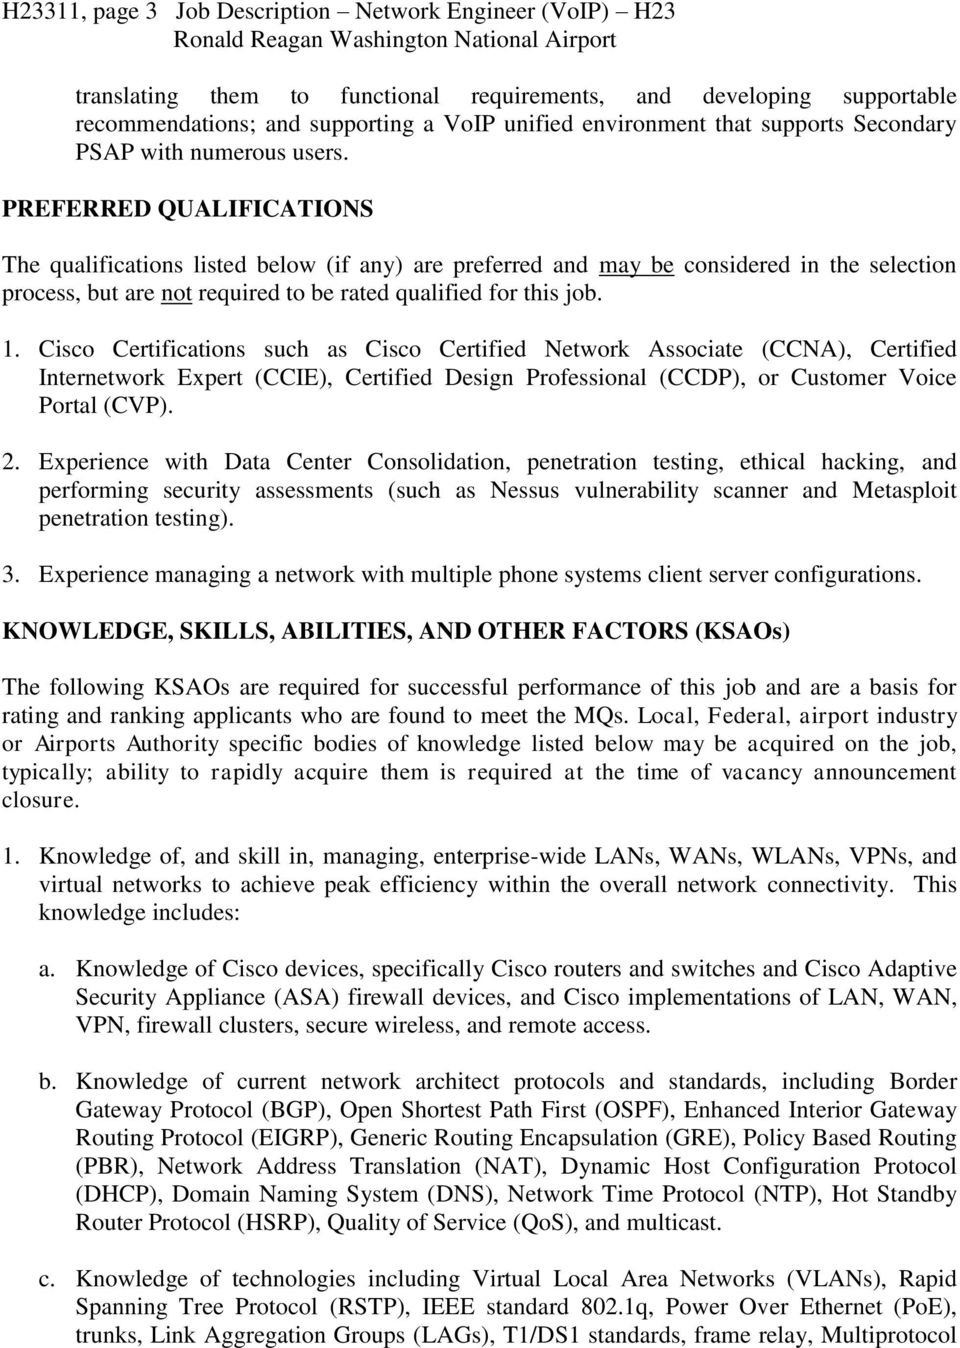 PREFERRED QUALIFICATIONS The qualifications listed below (if any) are preferred and may be considered in the selection process, but are not required to be rated qualified for this job. 1.